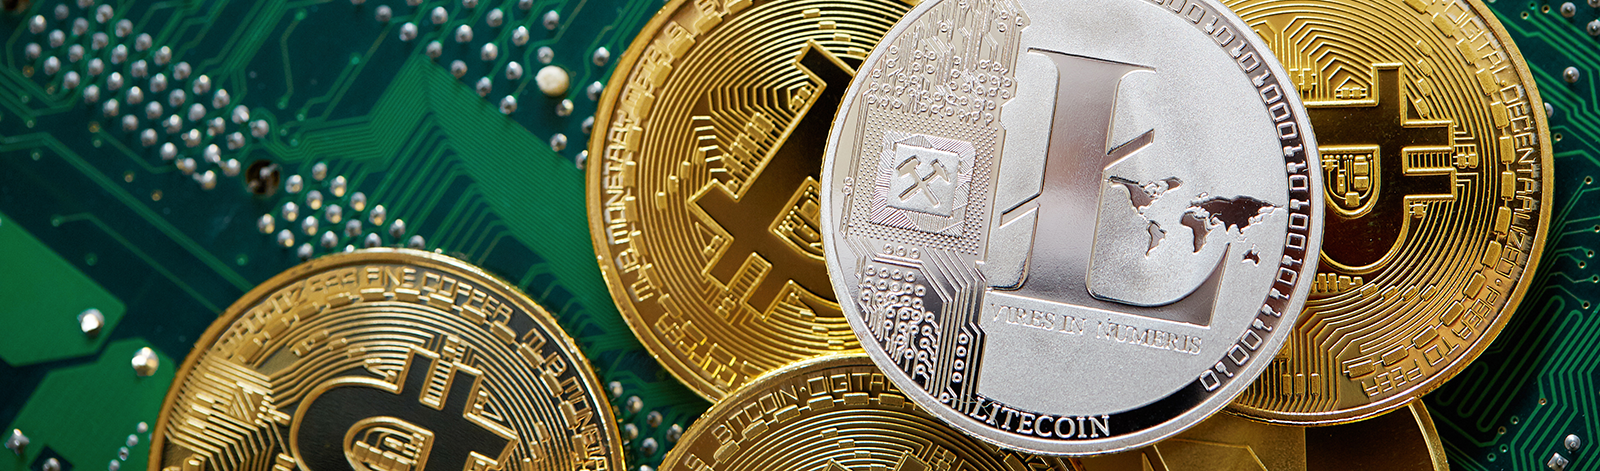 Stack of cryptocurrencies on motherboard